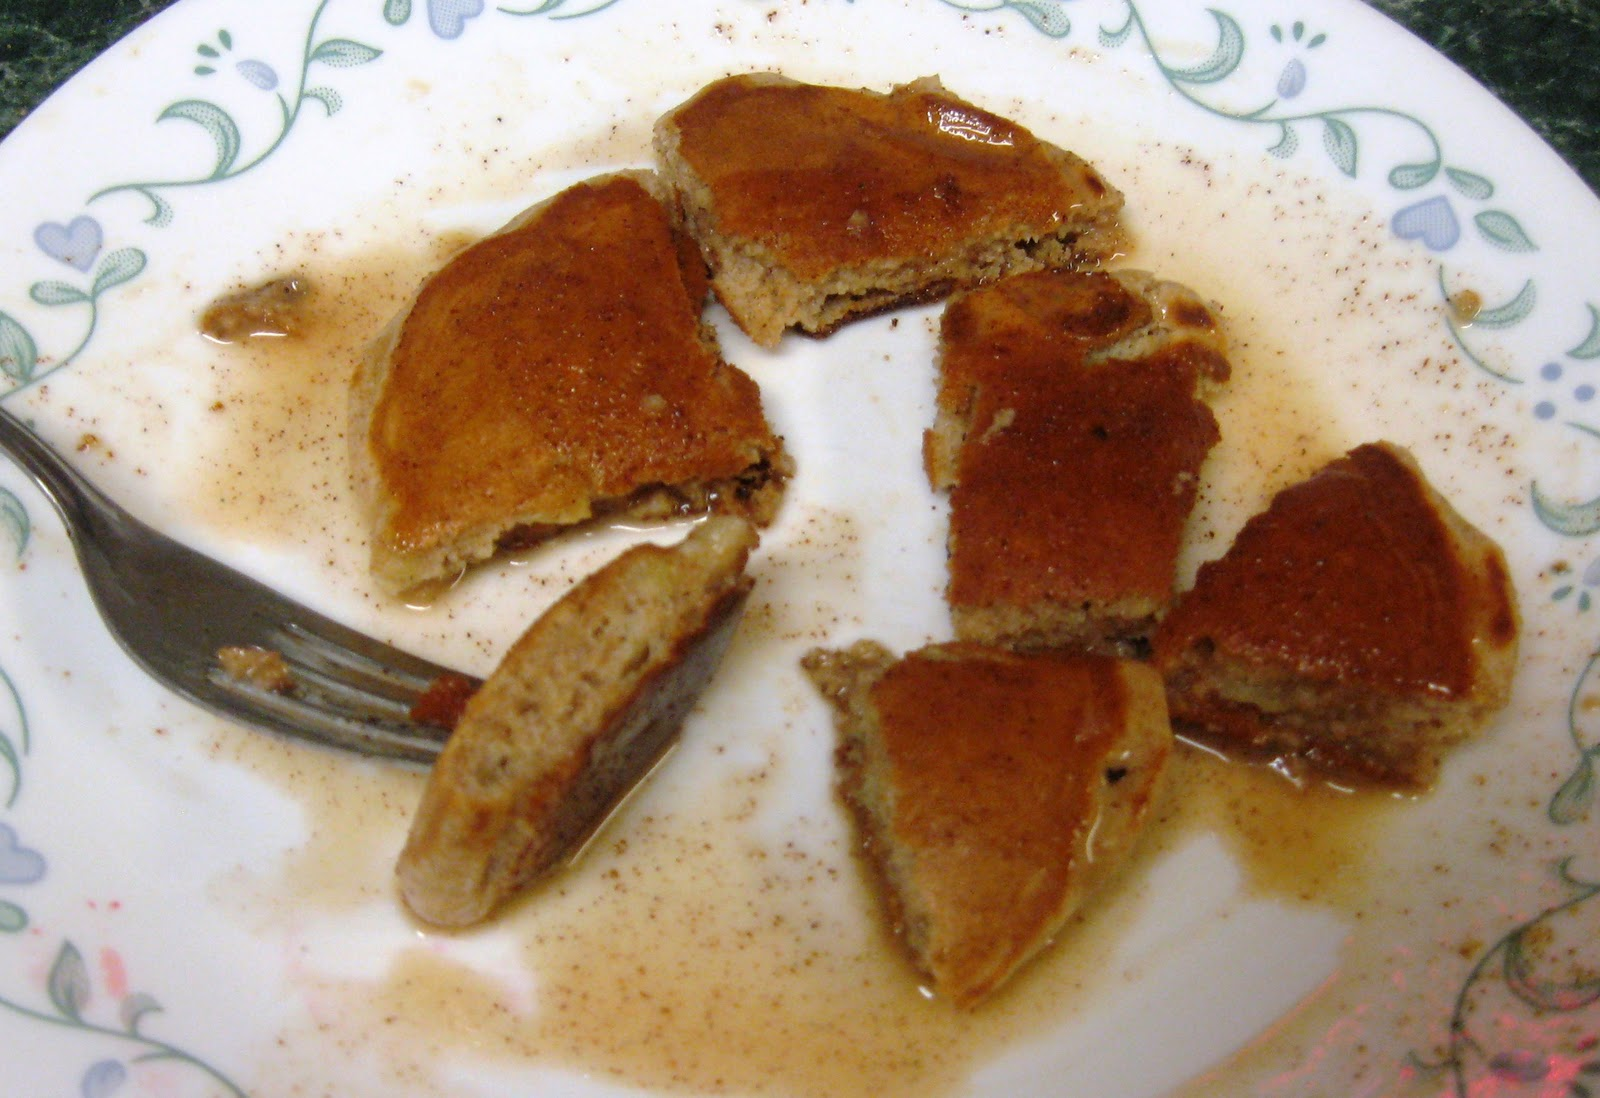 ... Healthy & Low Calorie: Apple Cinnamon Pancakes with Cinnamon Syrup